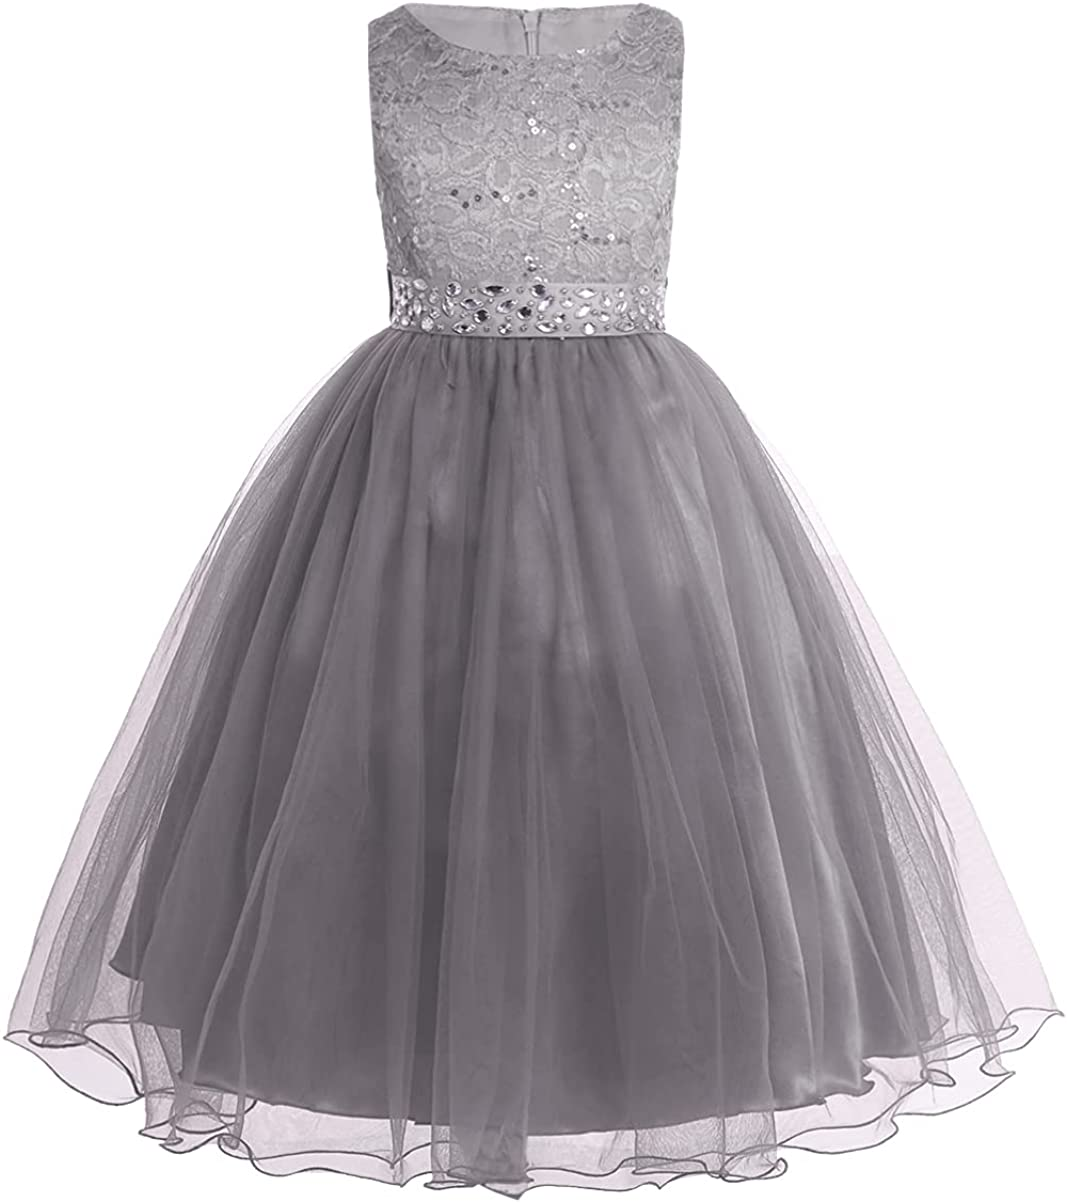 CHICTRY Sequined Lace Bodice Shining Crystal Waist Flower Party Summer Evening Prom Pageant Dress